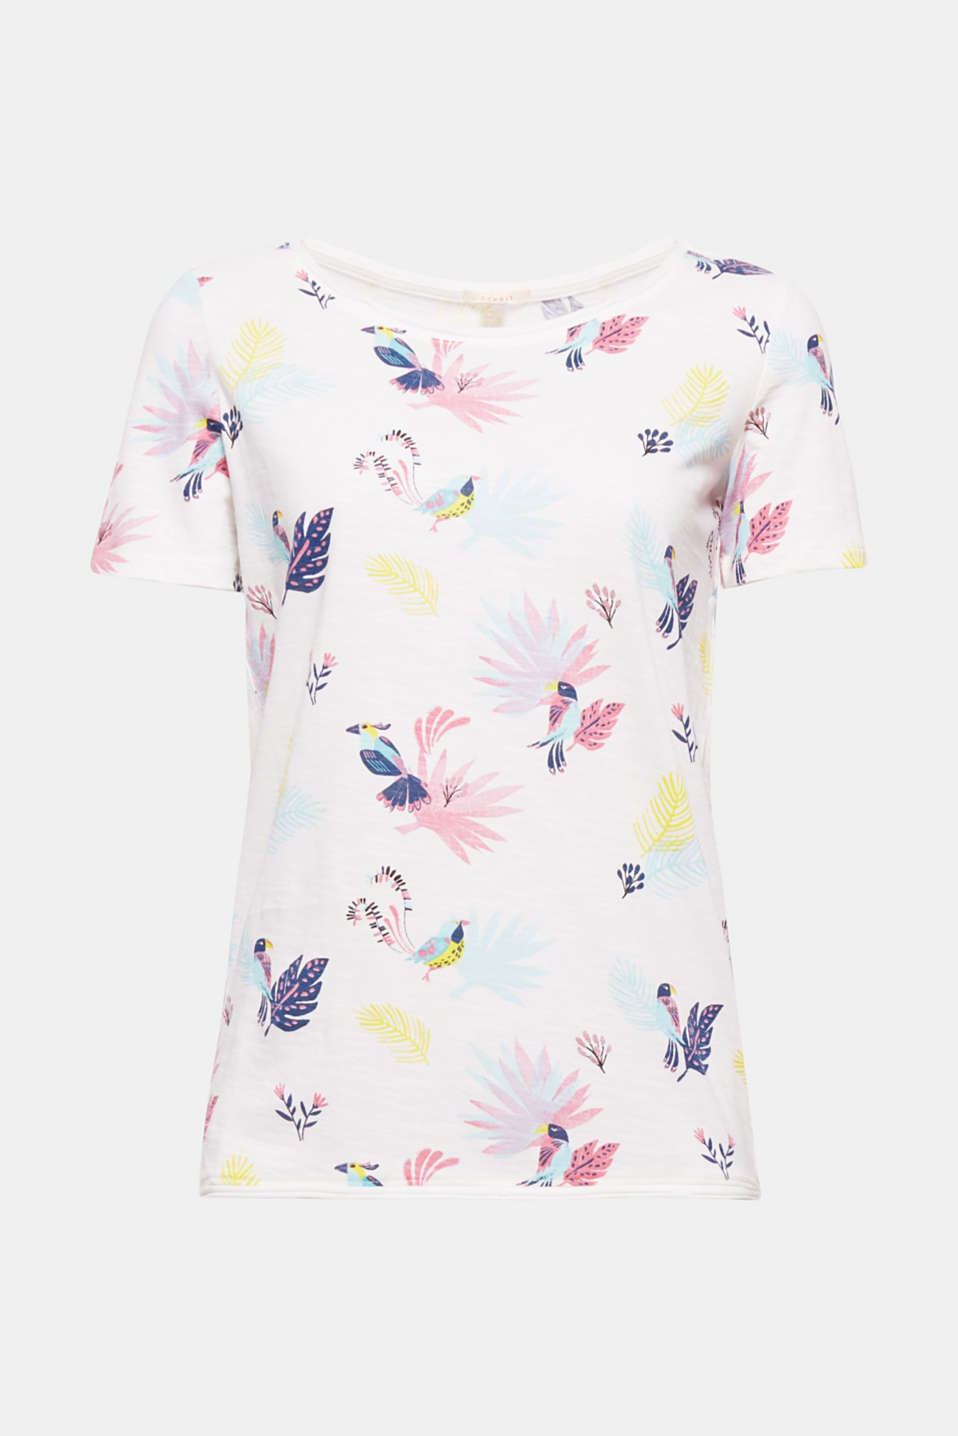 Colourful and eye-catching: Tropical print motifs may this slub T-shirt an airy, lightweight style with cheerful charm!